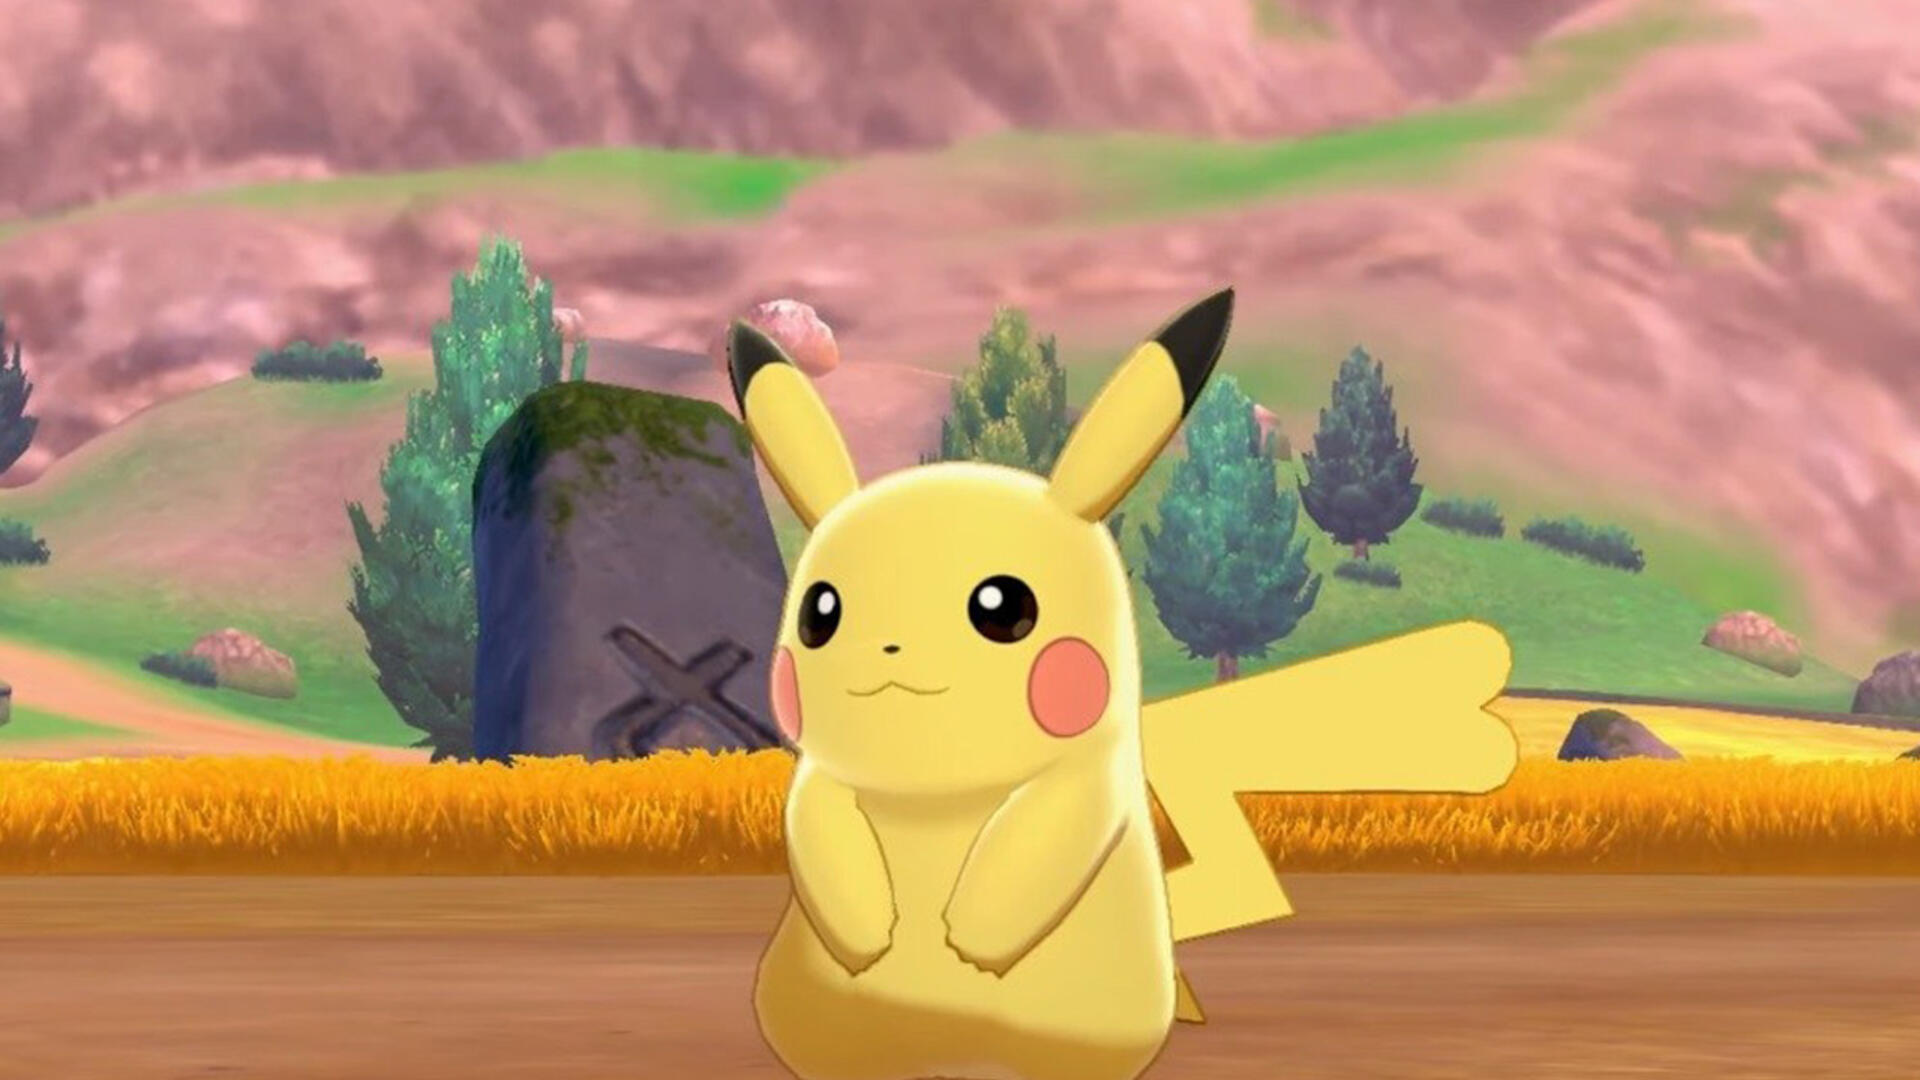 Pokemon Sword and Shield Gives You a Close-up of a Pikachu Squirming Against its Inevitable End